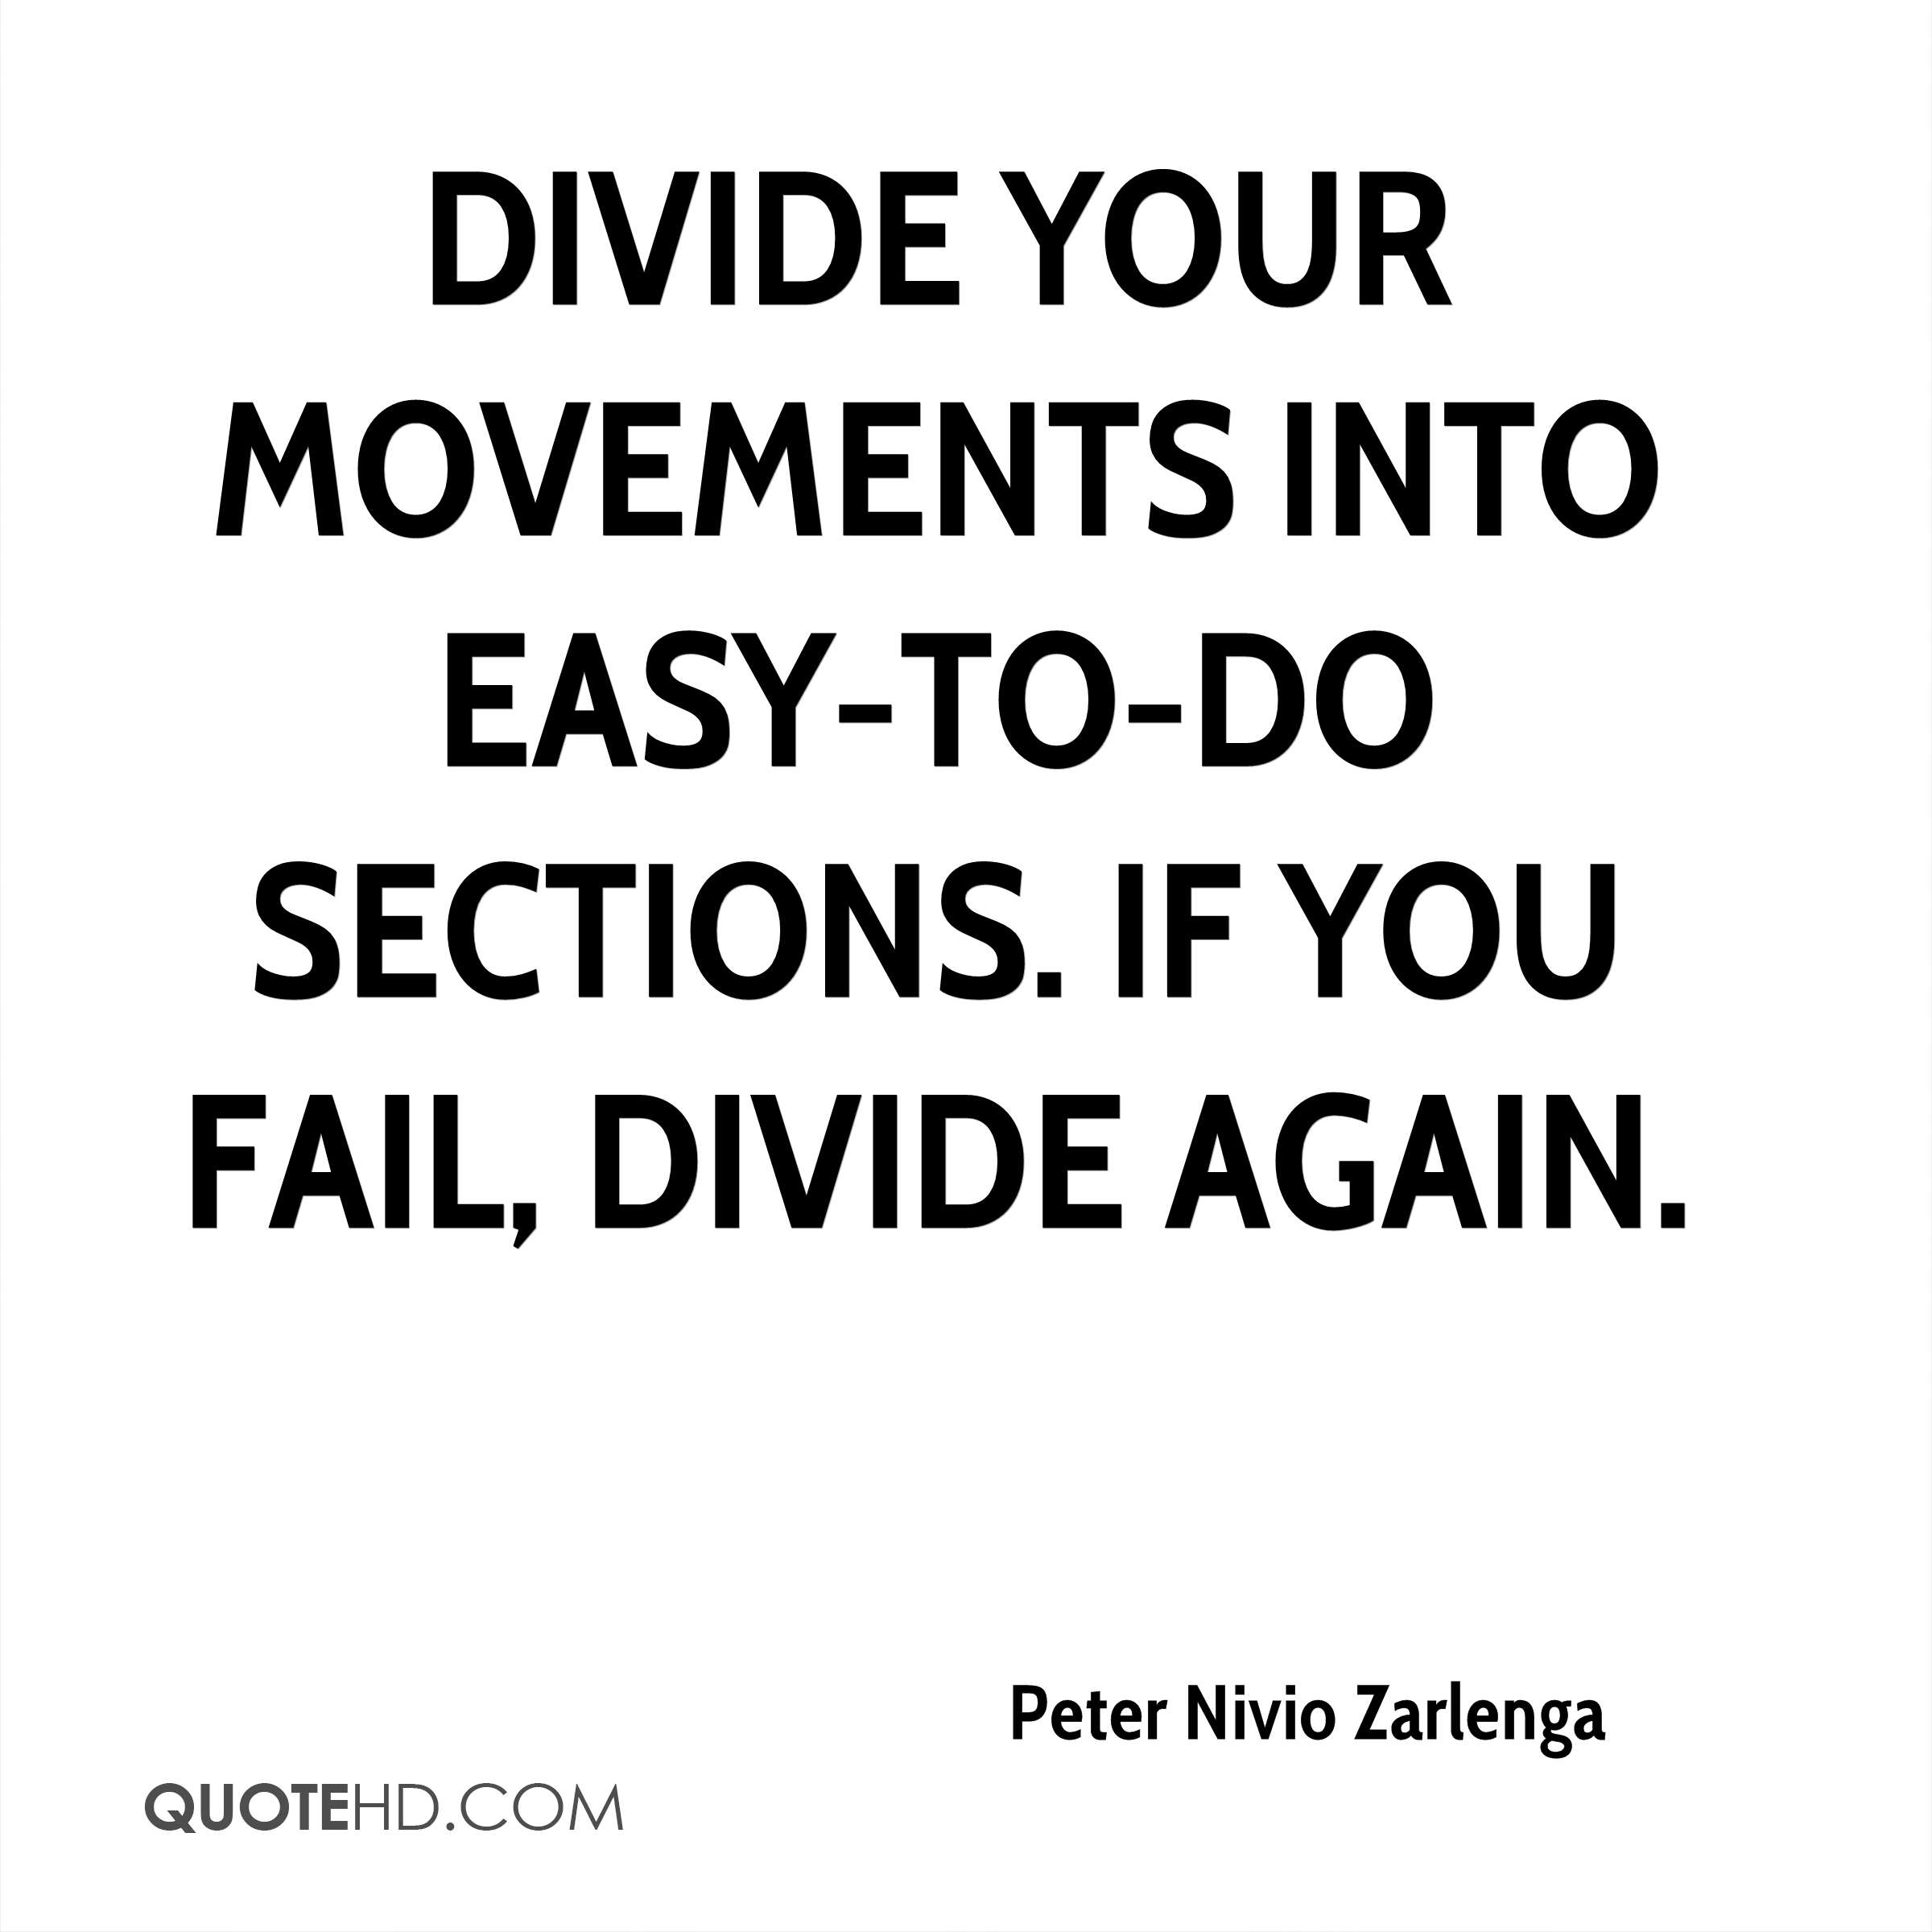 Divide your movements into easy-to-do sections. If you fail, divide again.